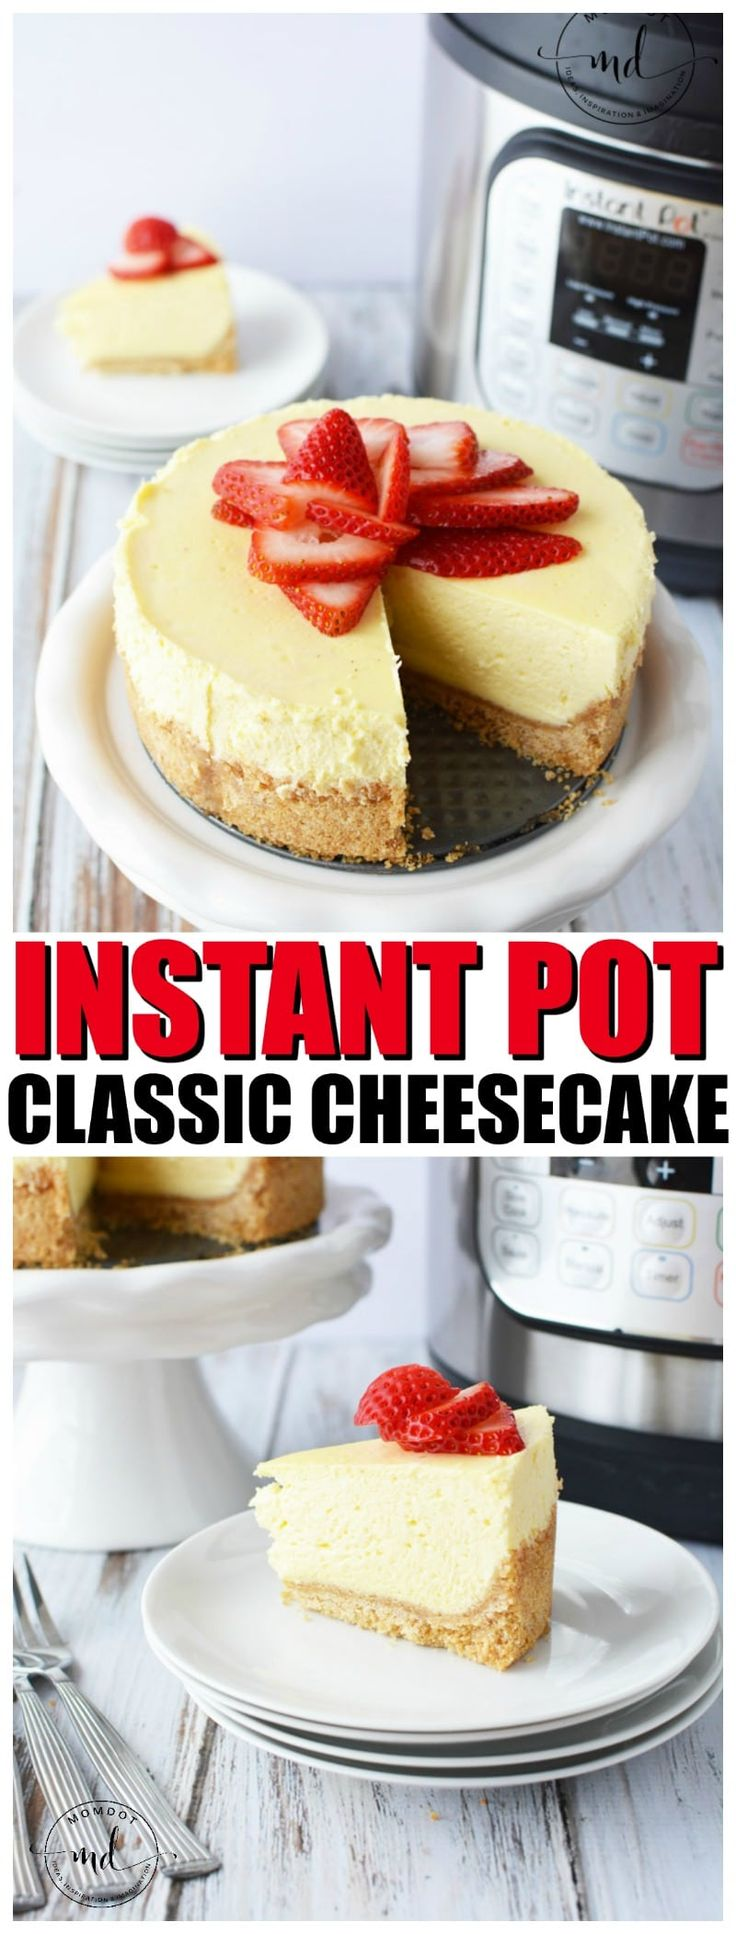 Instant Pot Cheesecake Recipe topped with Strawberries is an easy, homemade, and classic cheesecake. Fire up that pressure cooker!